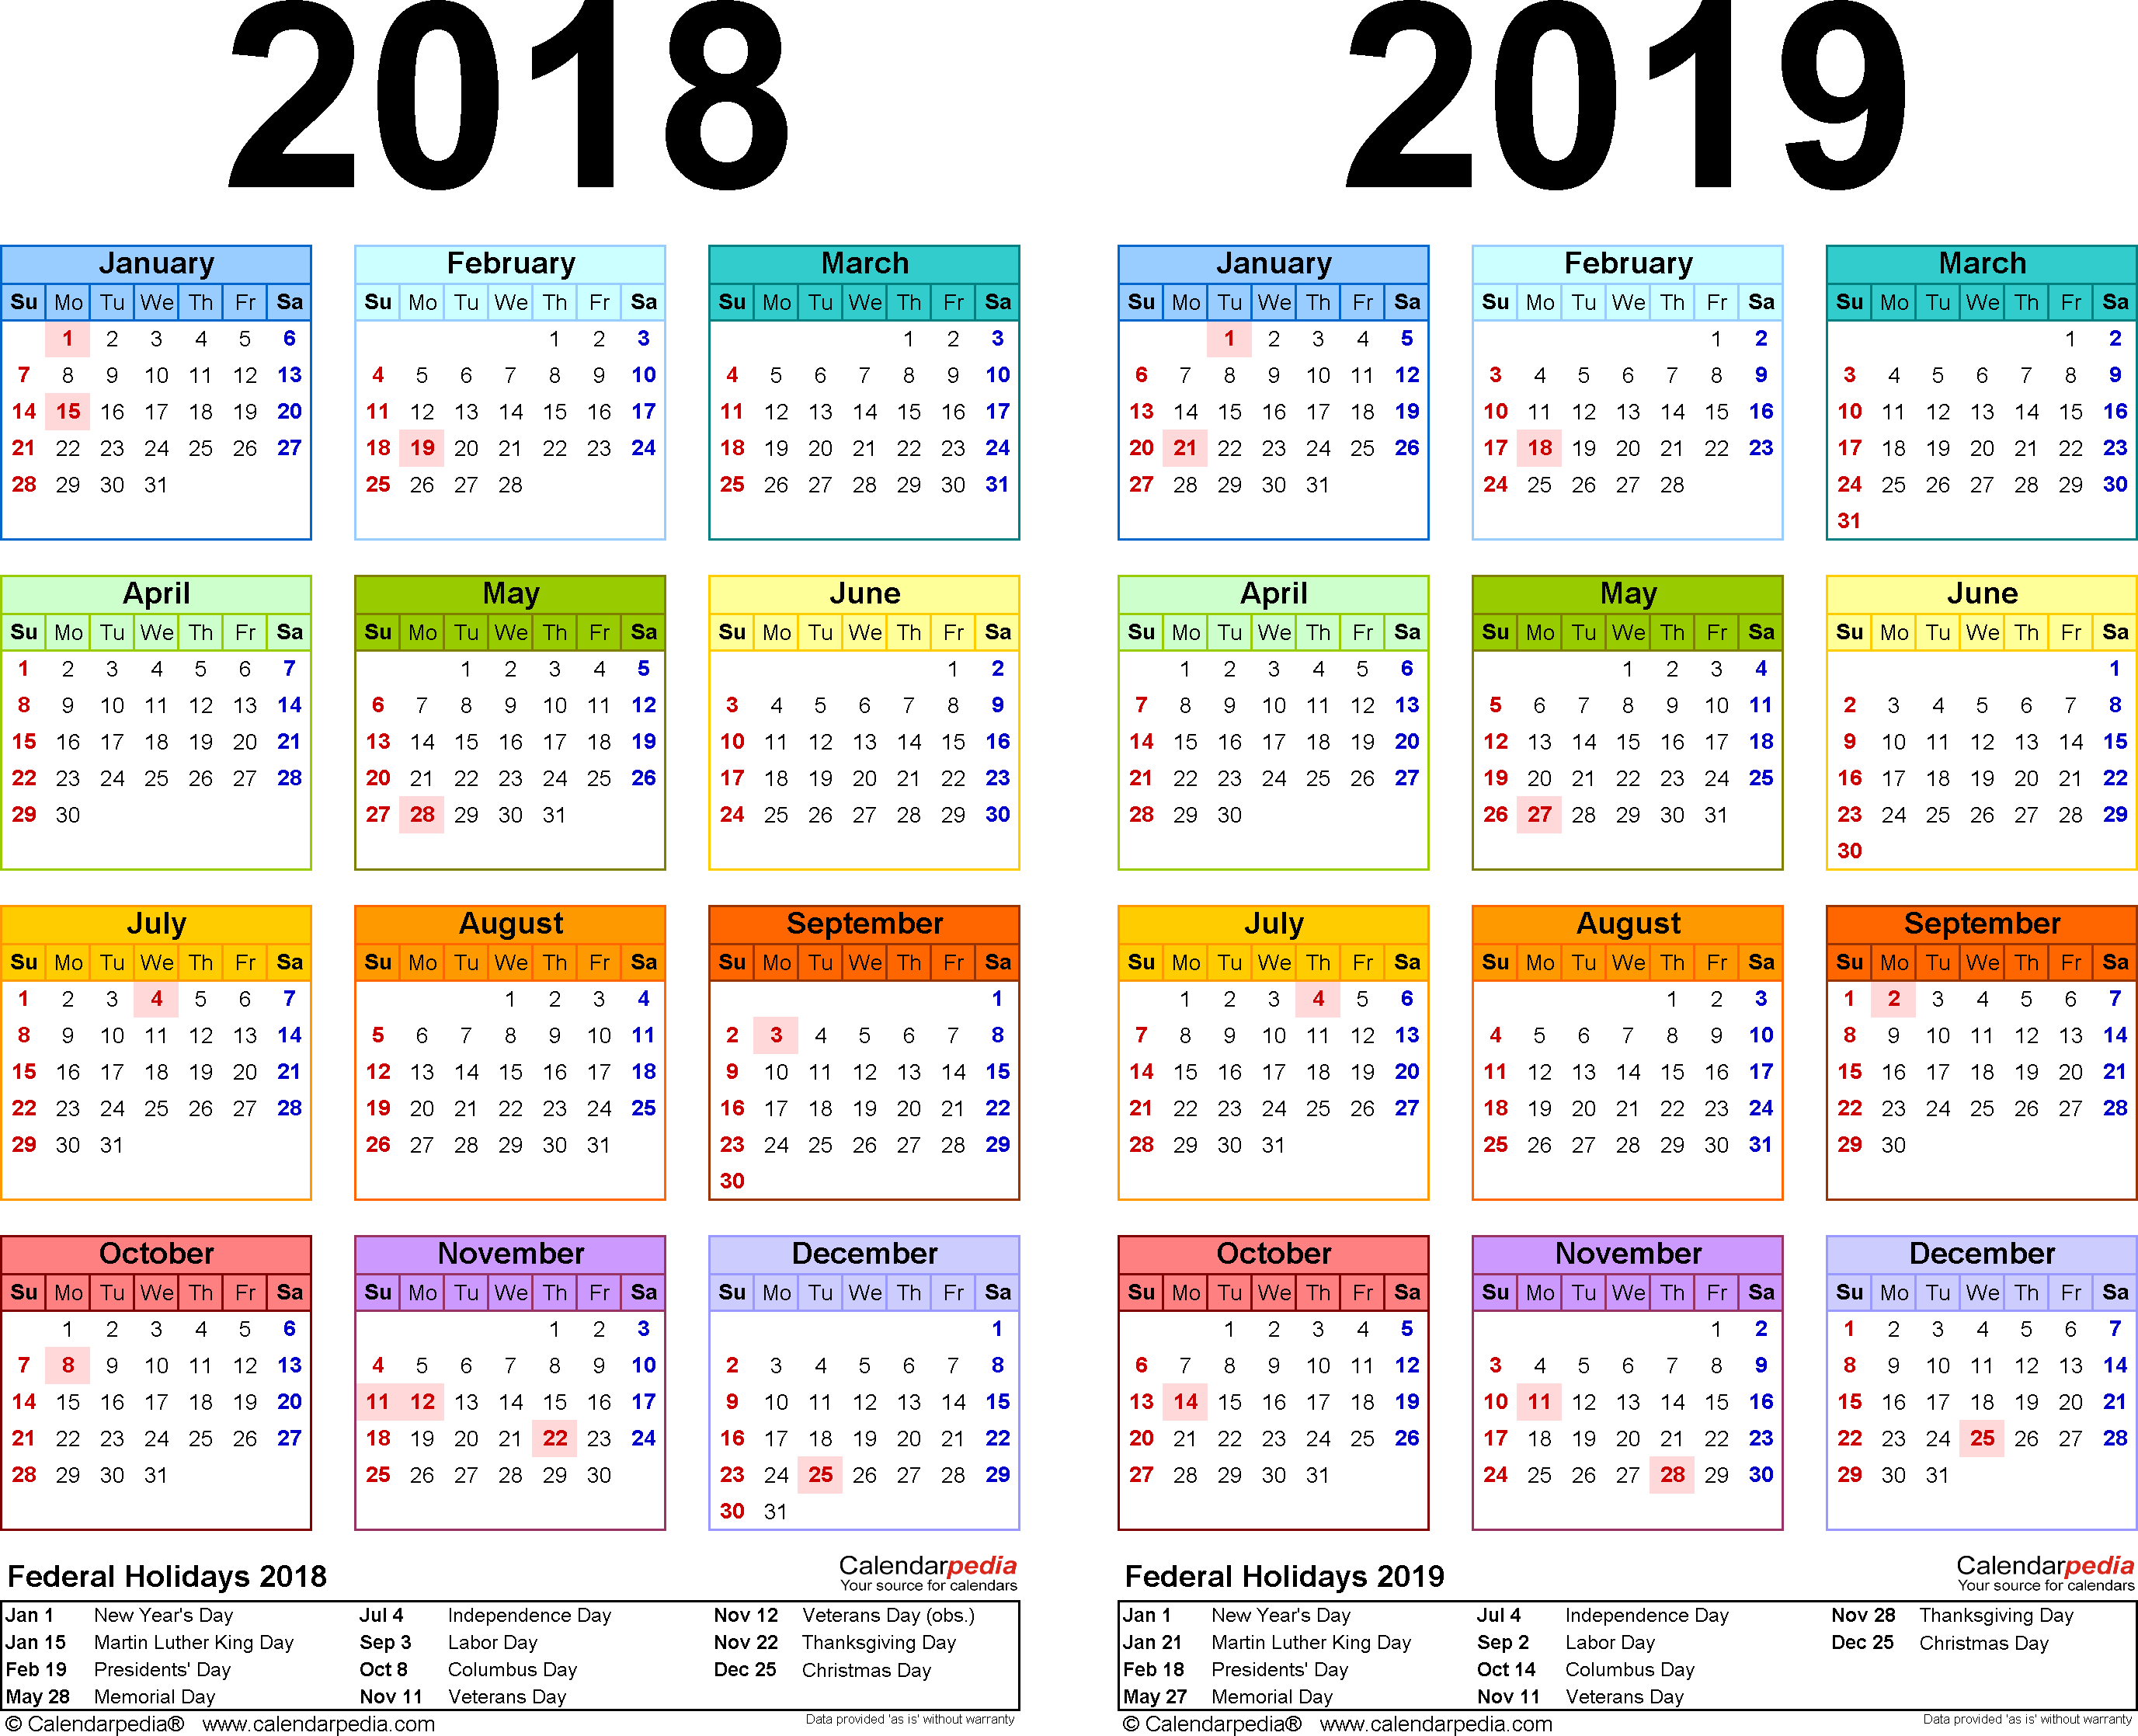 Calendar 2019 And 2016 Printable Calendar 2018/ Calendar 2019 | Schedule calendar template | Yearly